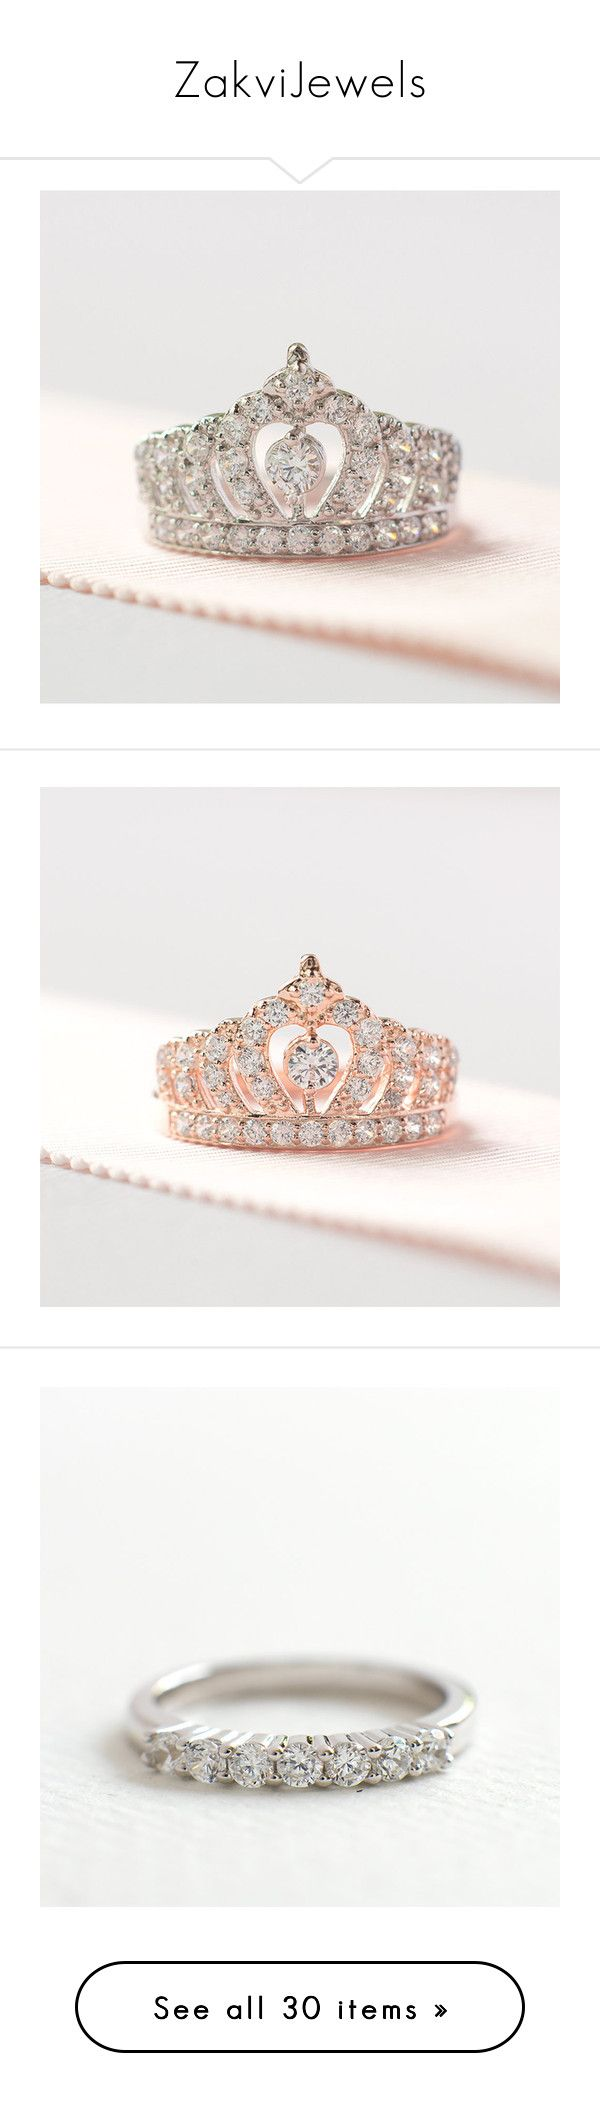 """""""ZakviJewels"""" by zakvijewels on Polyvore featuring jewelry, rings, engagement rings, crown ring, crown jewelry, crown engagement rings, sterling silver crown ring, sterling silver jewelry and rose gold jewellery"""